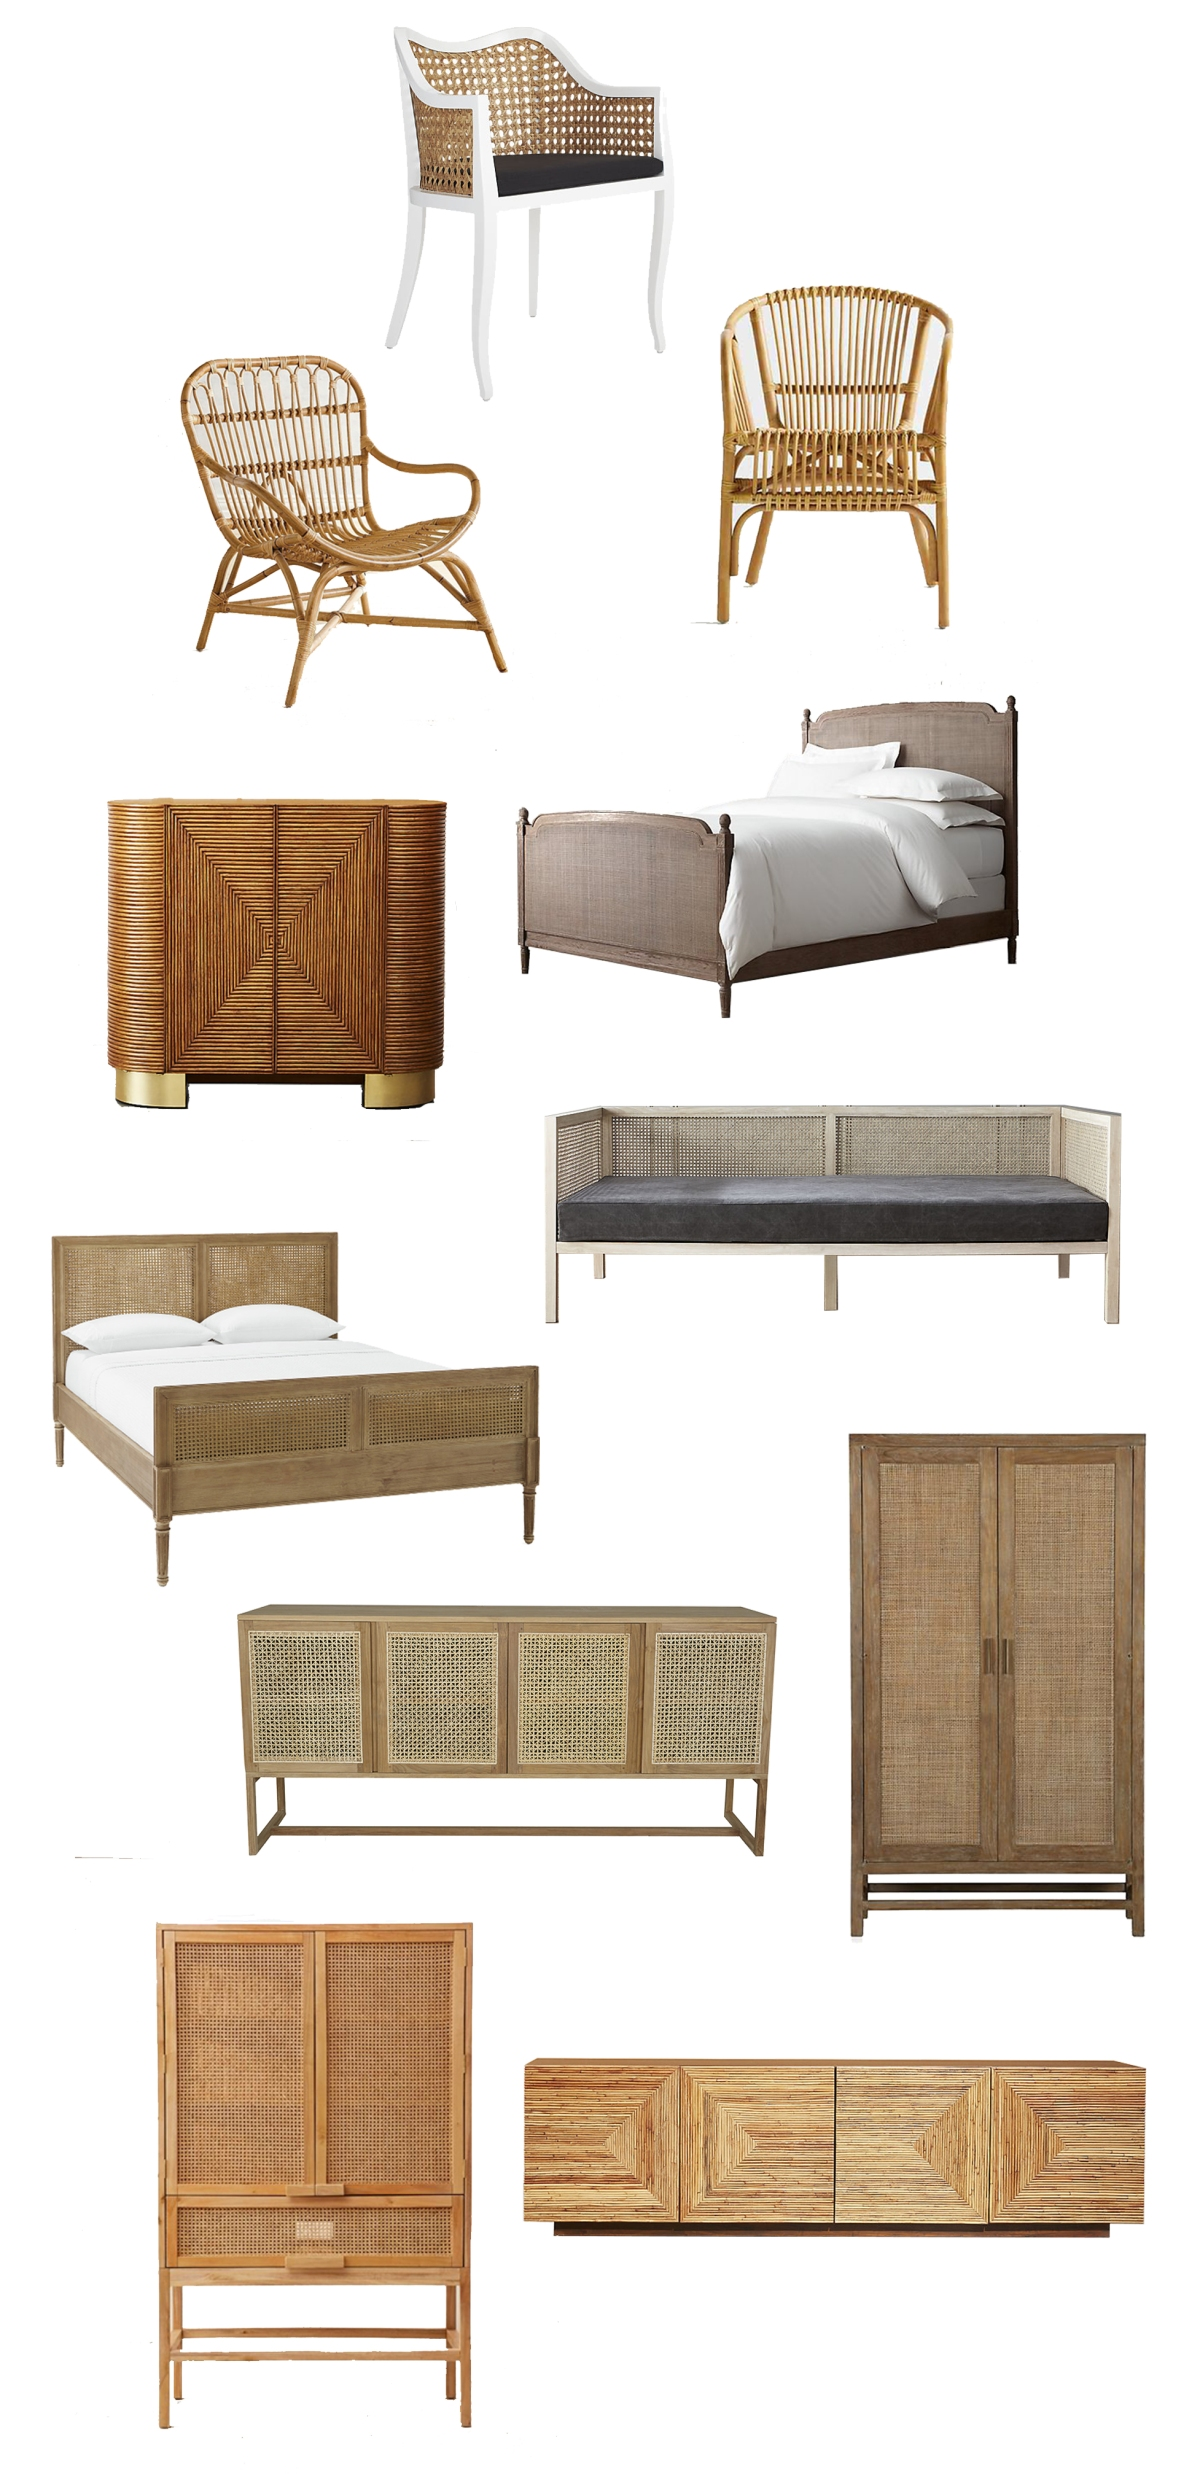 furniture picks.jpg